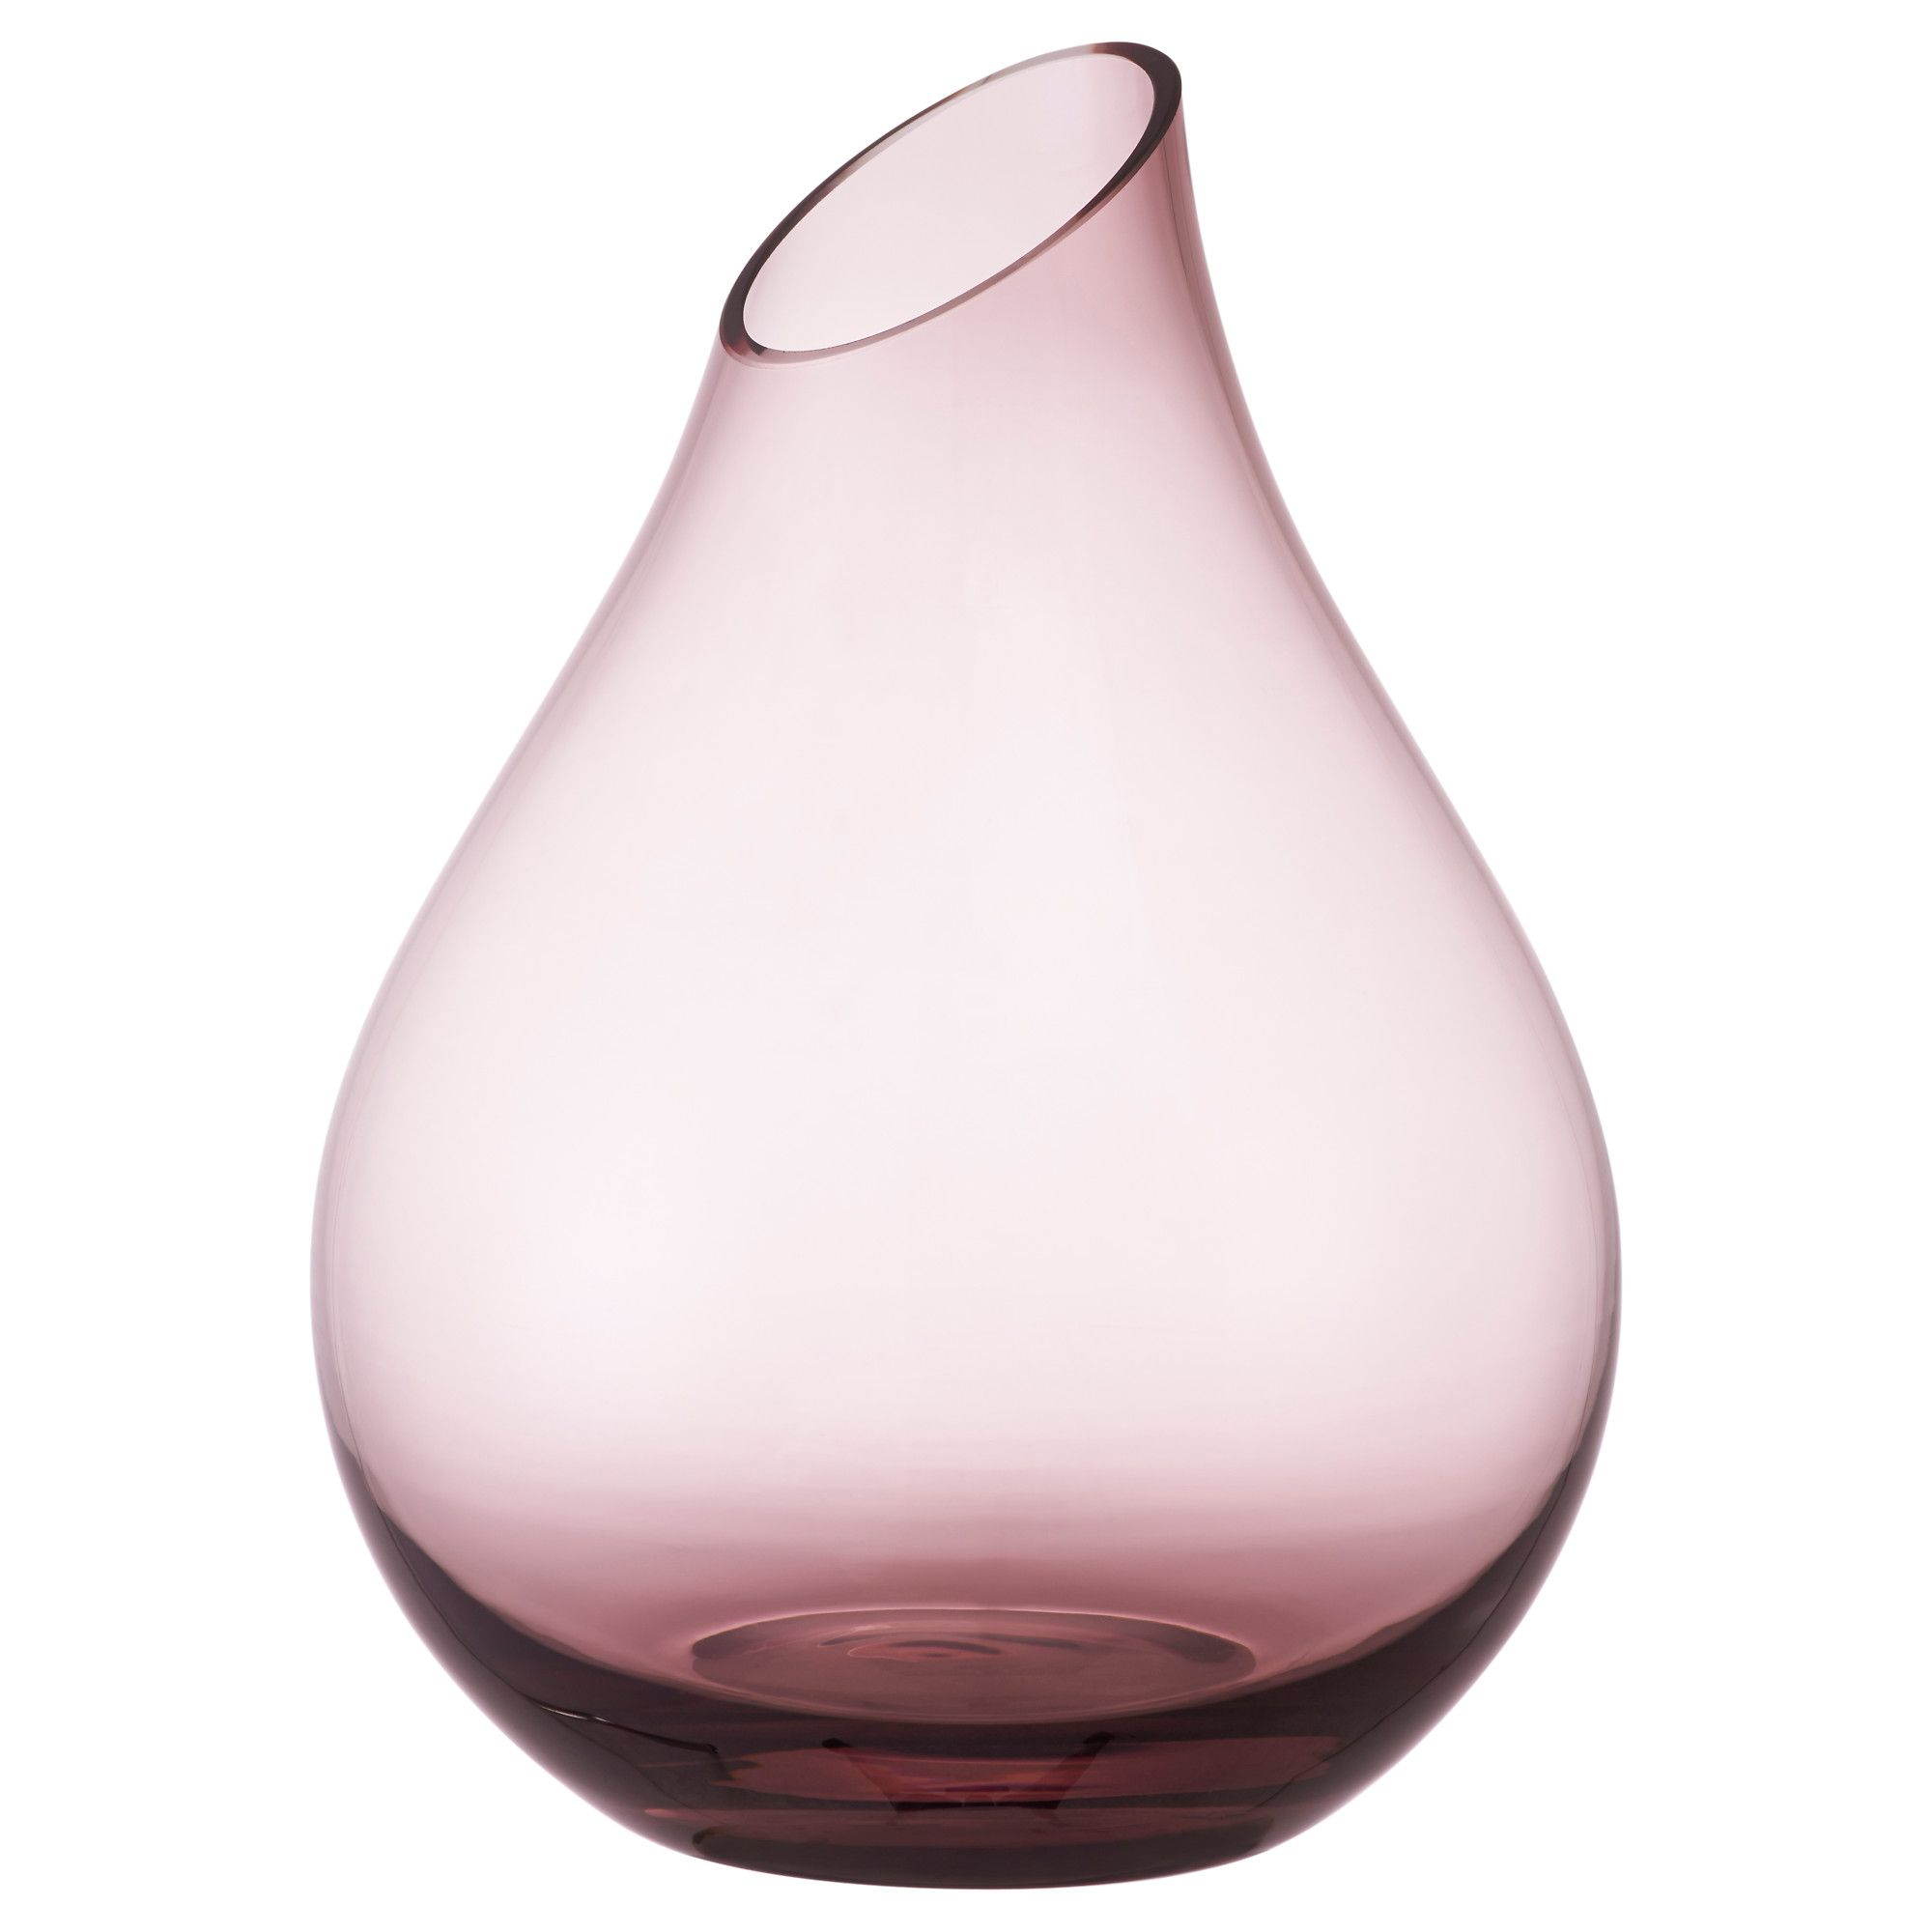 Vase En Verre Ikea Ikea Sannolik Vase The Glass Vase Is Mouth Blown By A Skilled